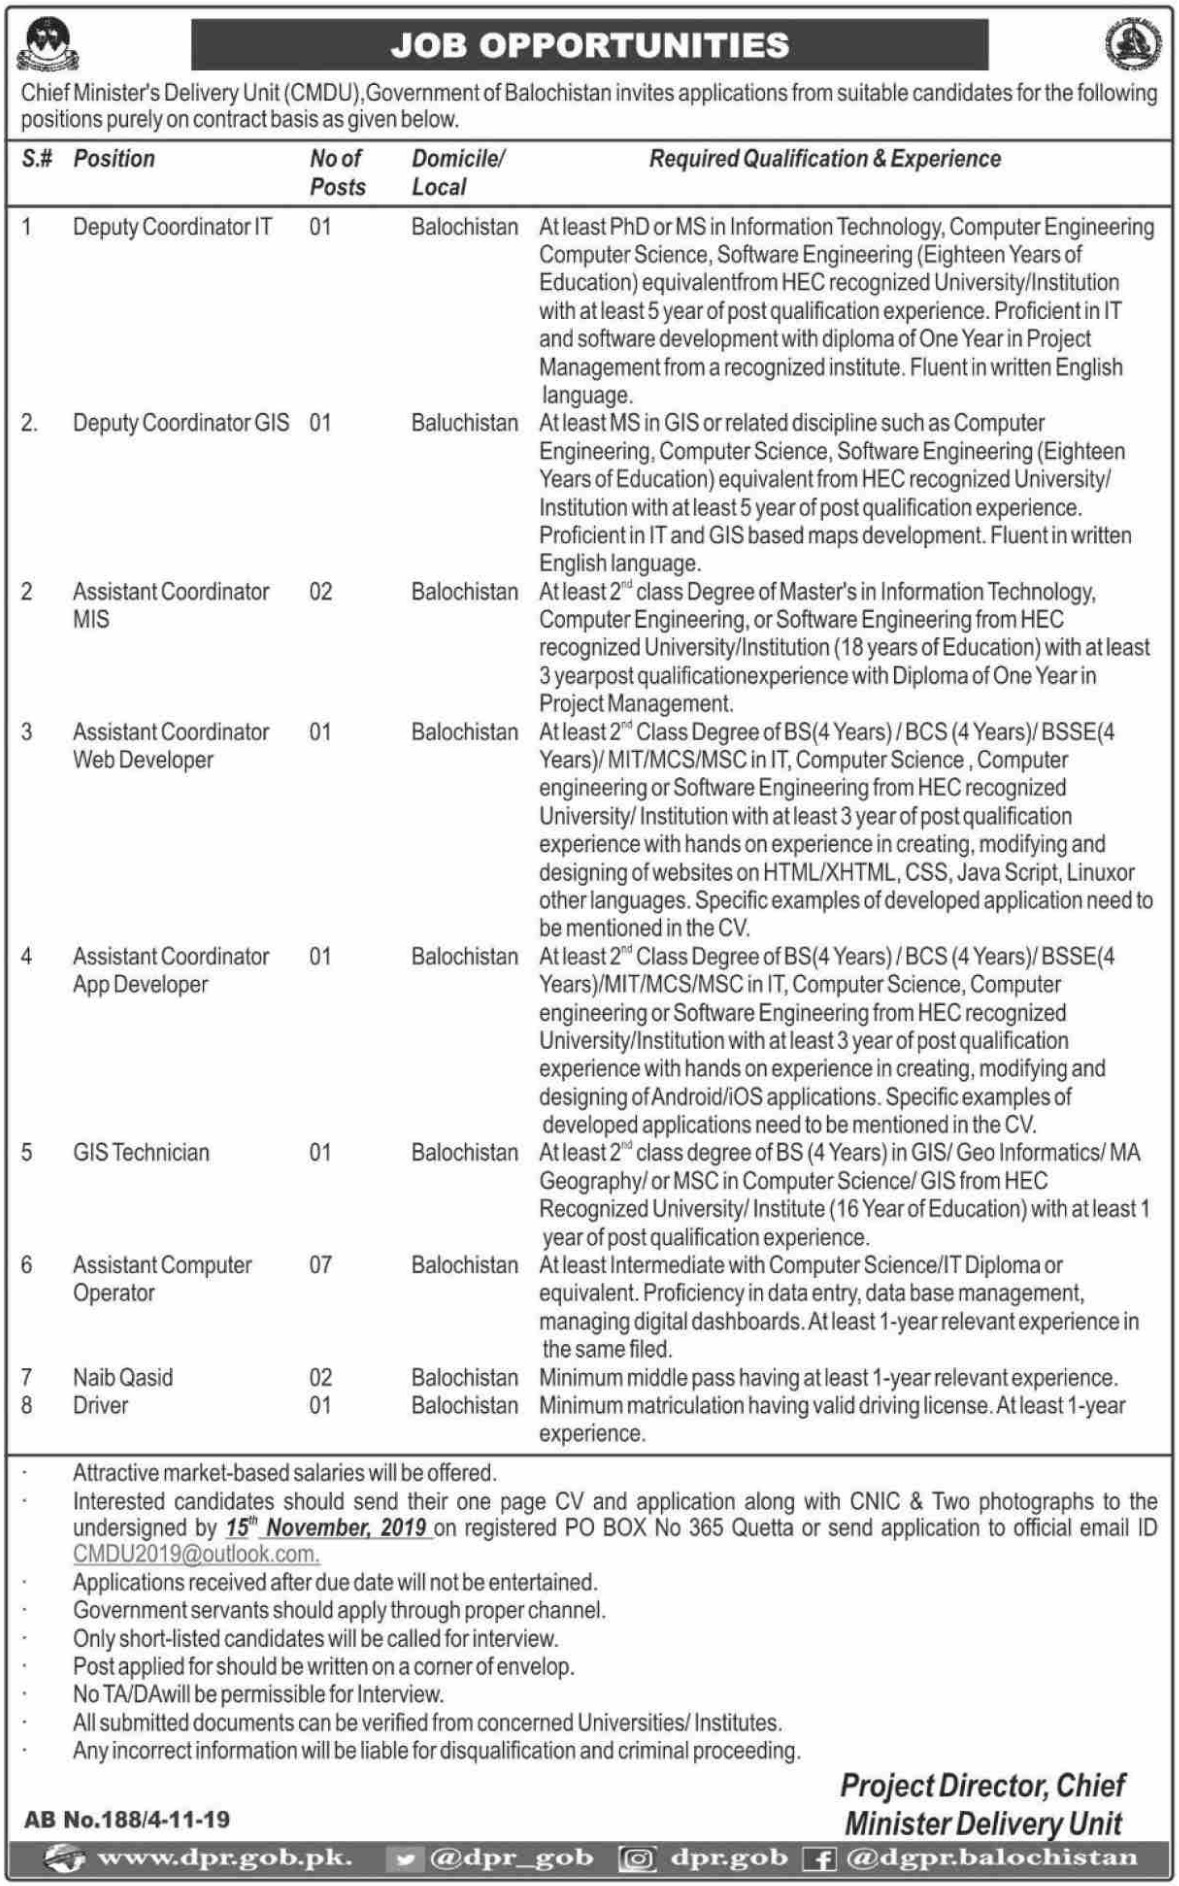 Chief Minister Delivery Unit CMDU Balochistan Jobs 2019